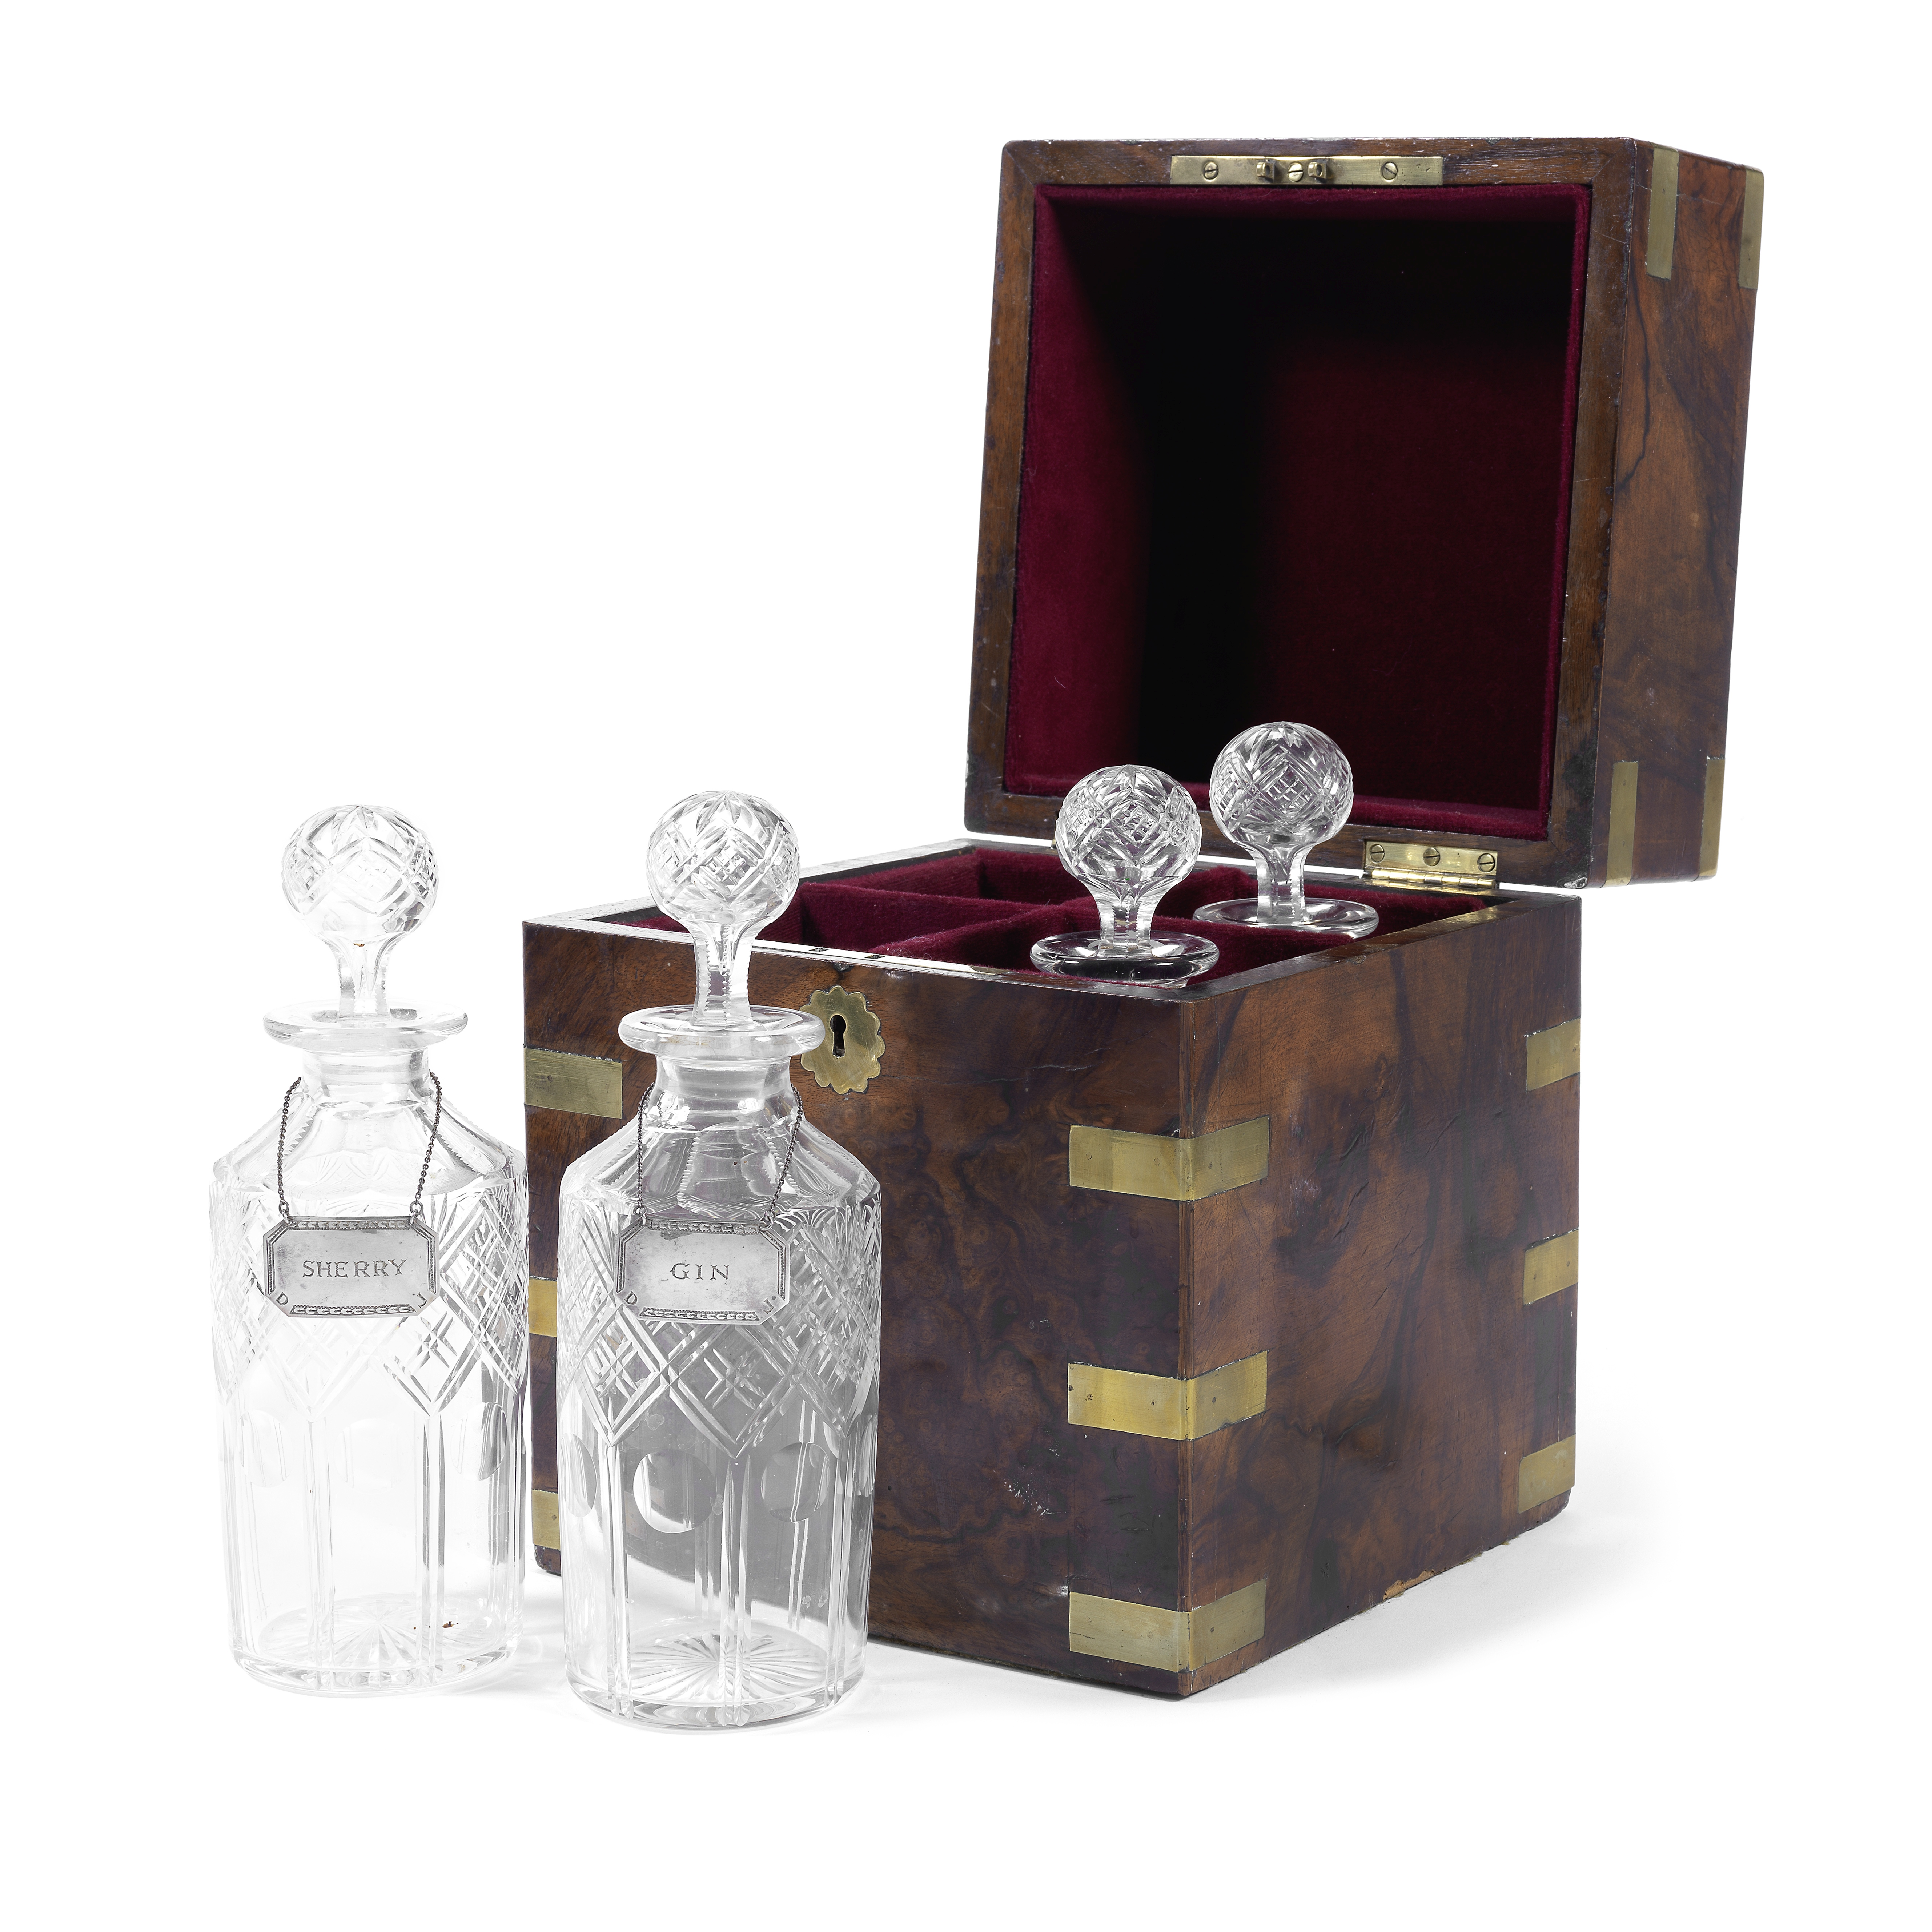 A late Victorian burr walnut and brass mounted decanter box